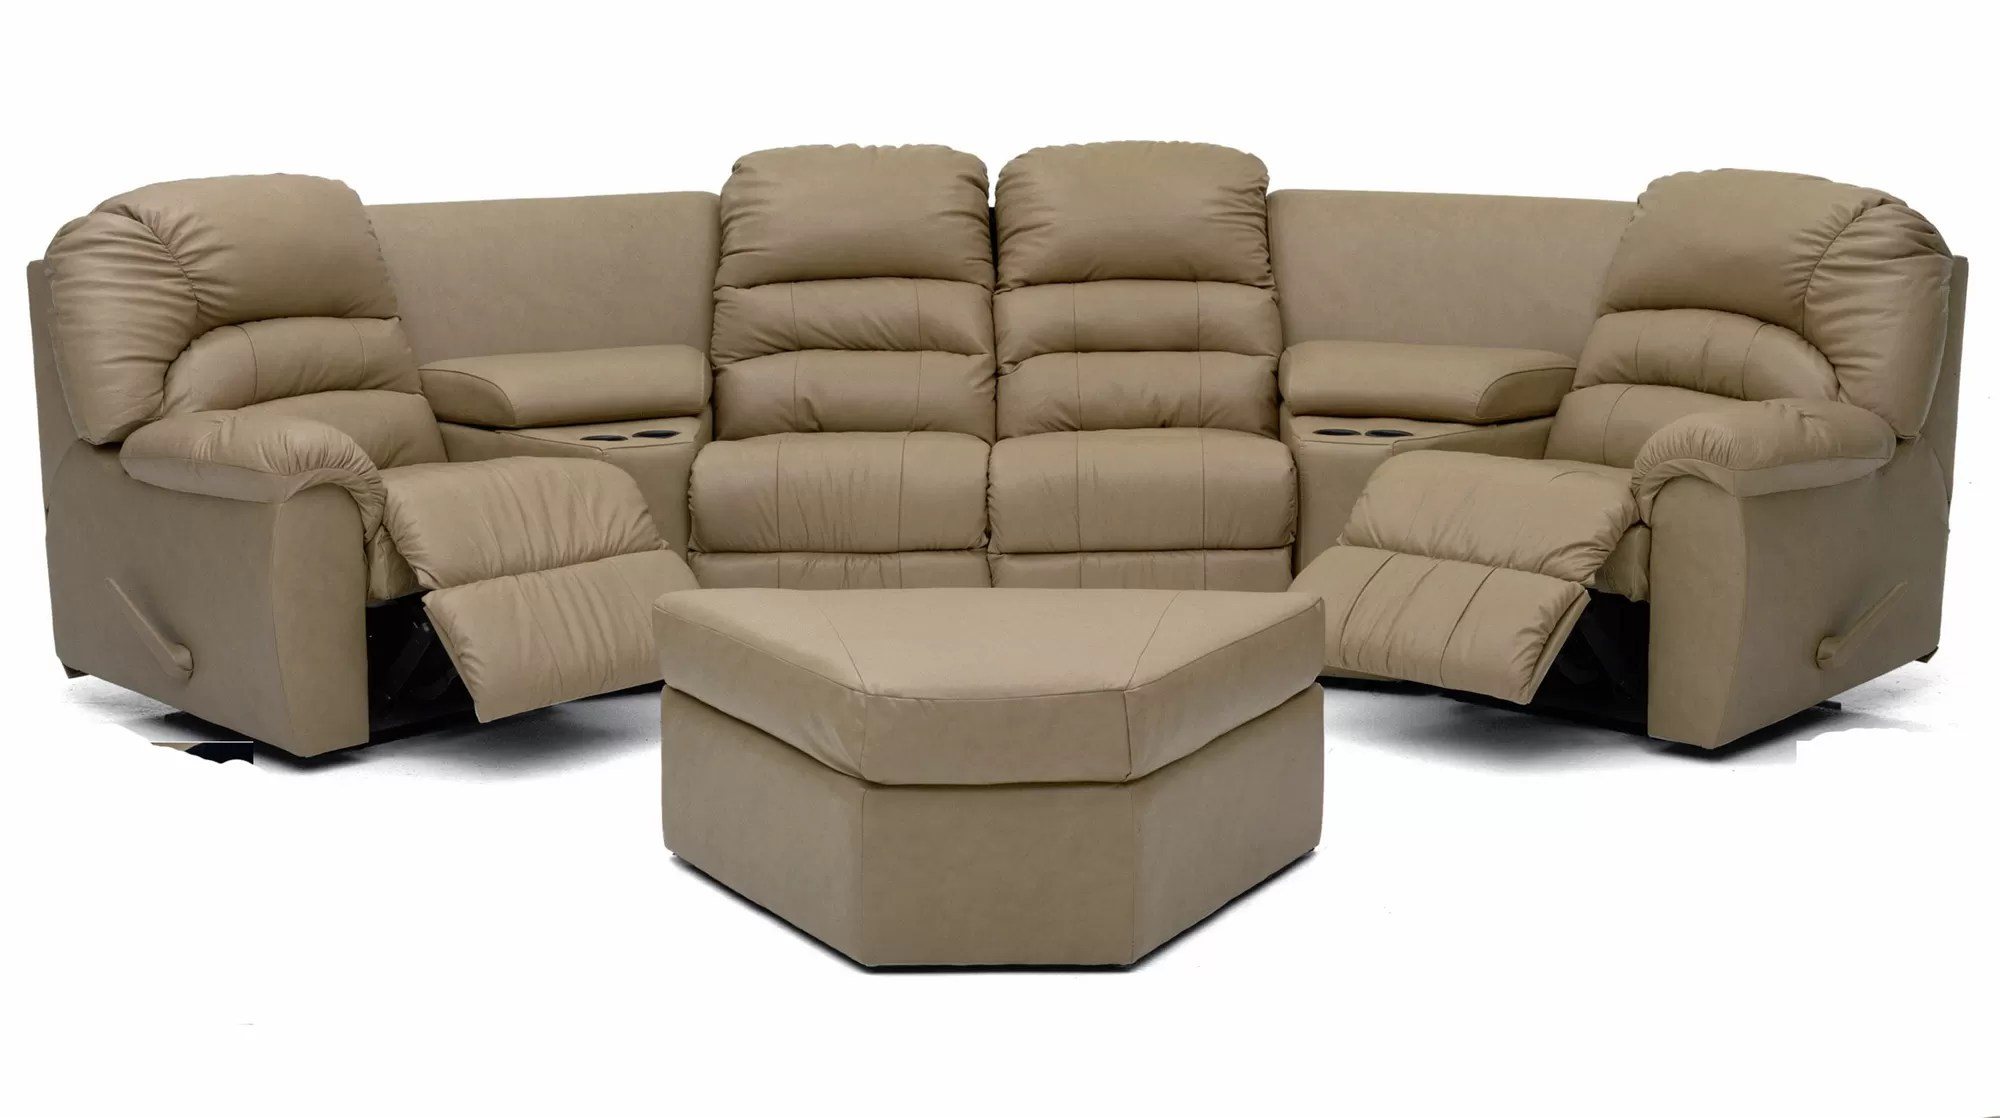 lazy boy reclining sofa and loveseat half moon set recliners sale leather sectional couch